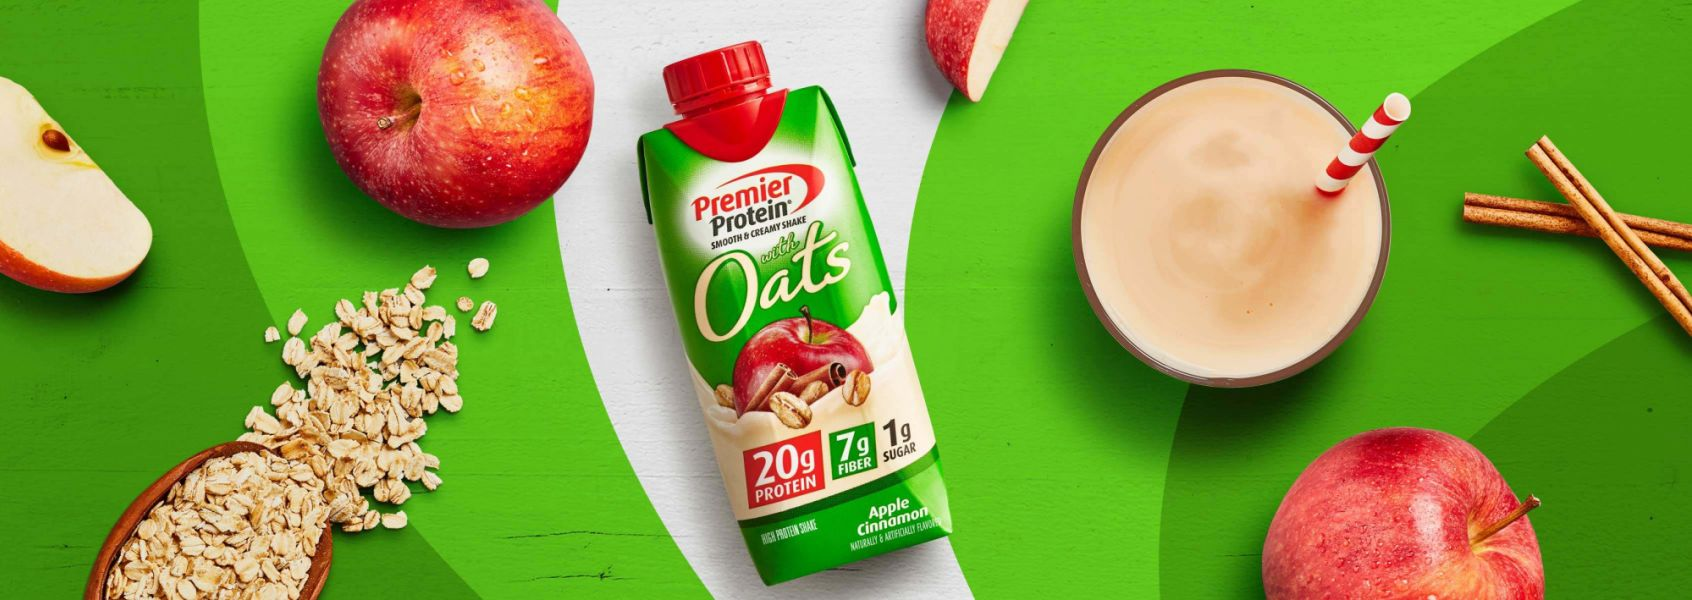 A photo of Premier Protein Apple Cinnamon Protein Shake with Oats